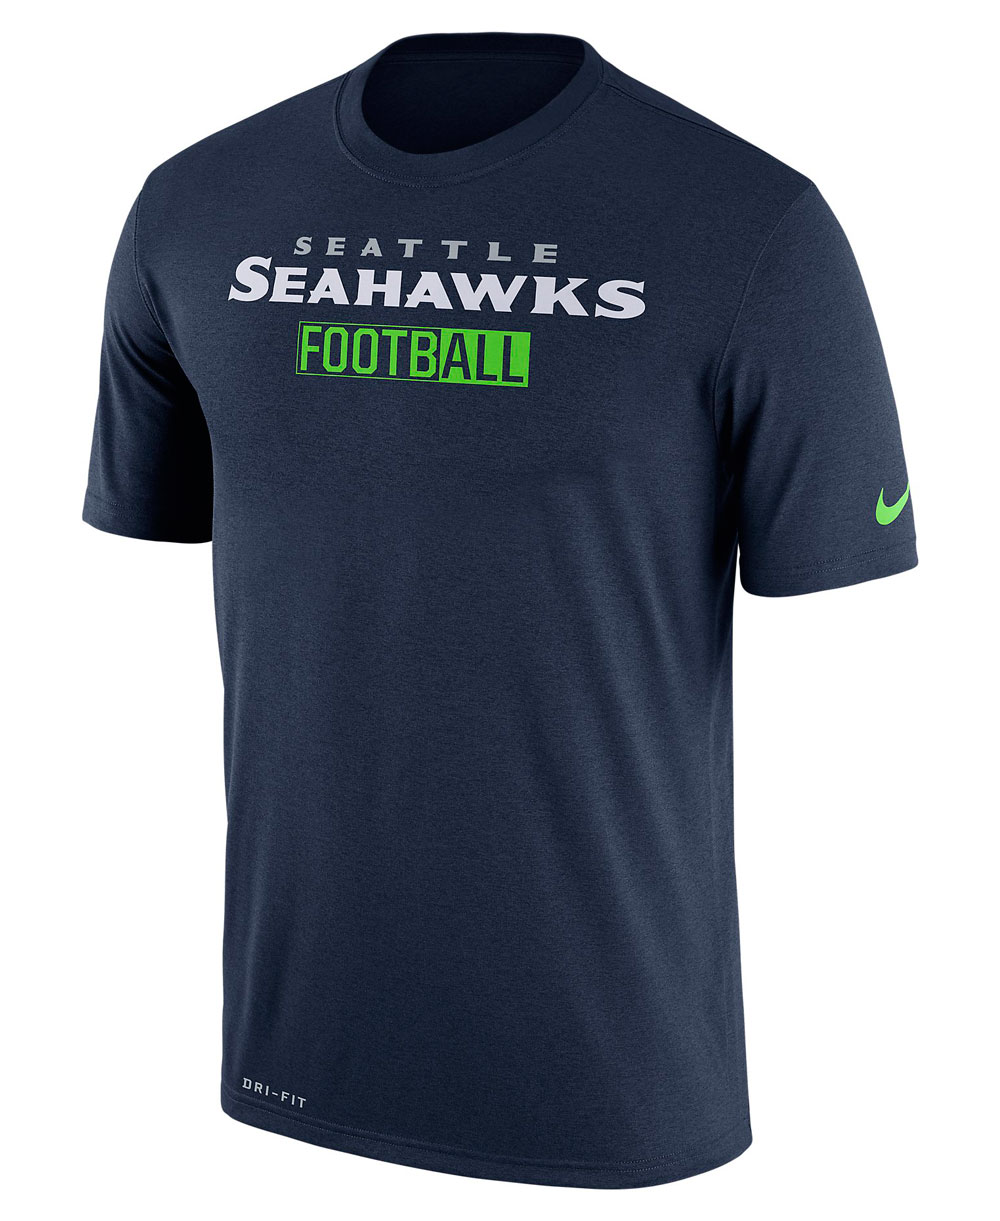 Legend All Football T-Shirt Homme NFL Seahawks